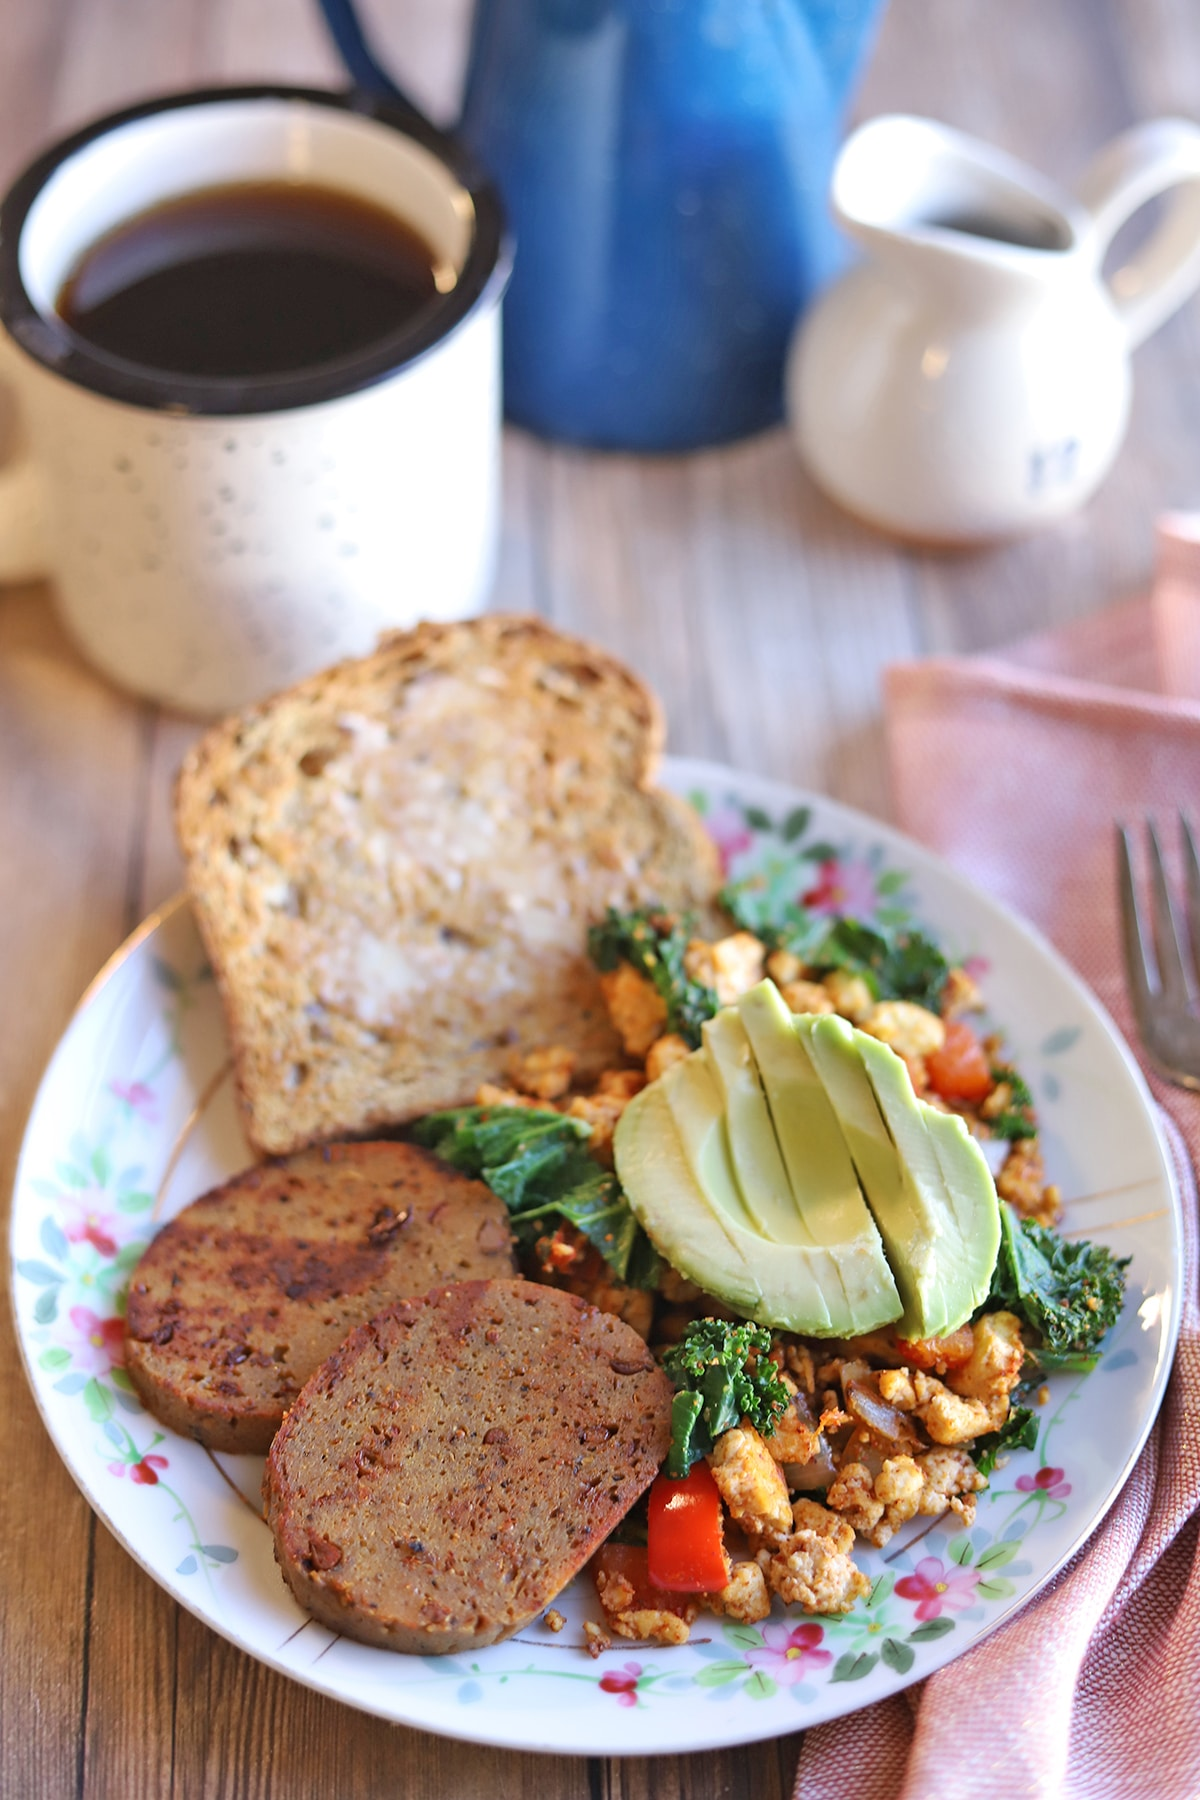 Maple mustard sausage slices on plate with tofu scramble and toast.